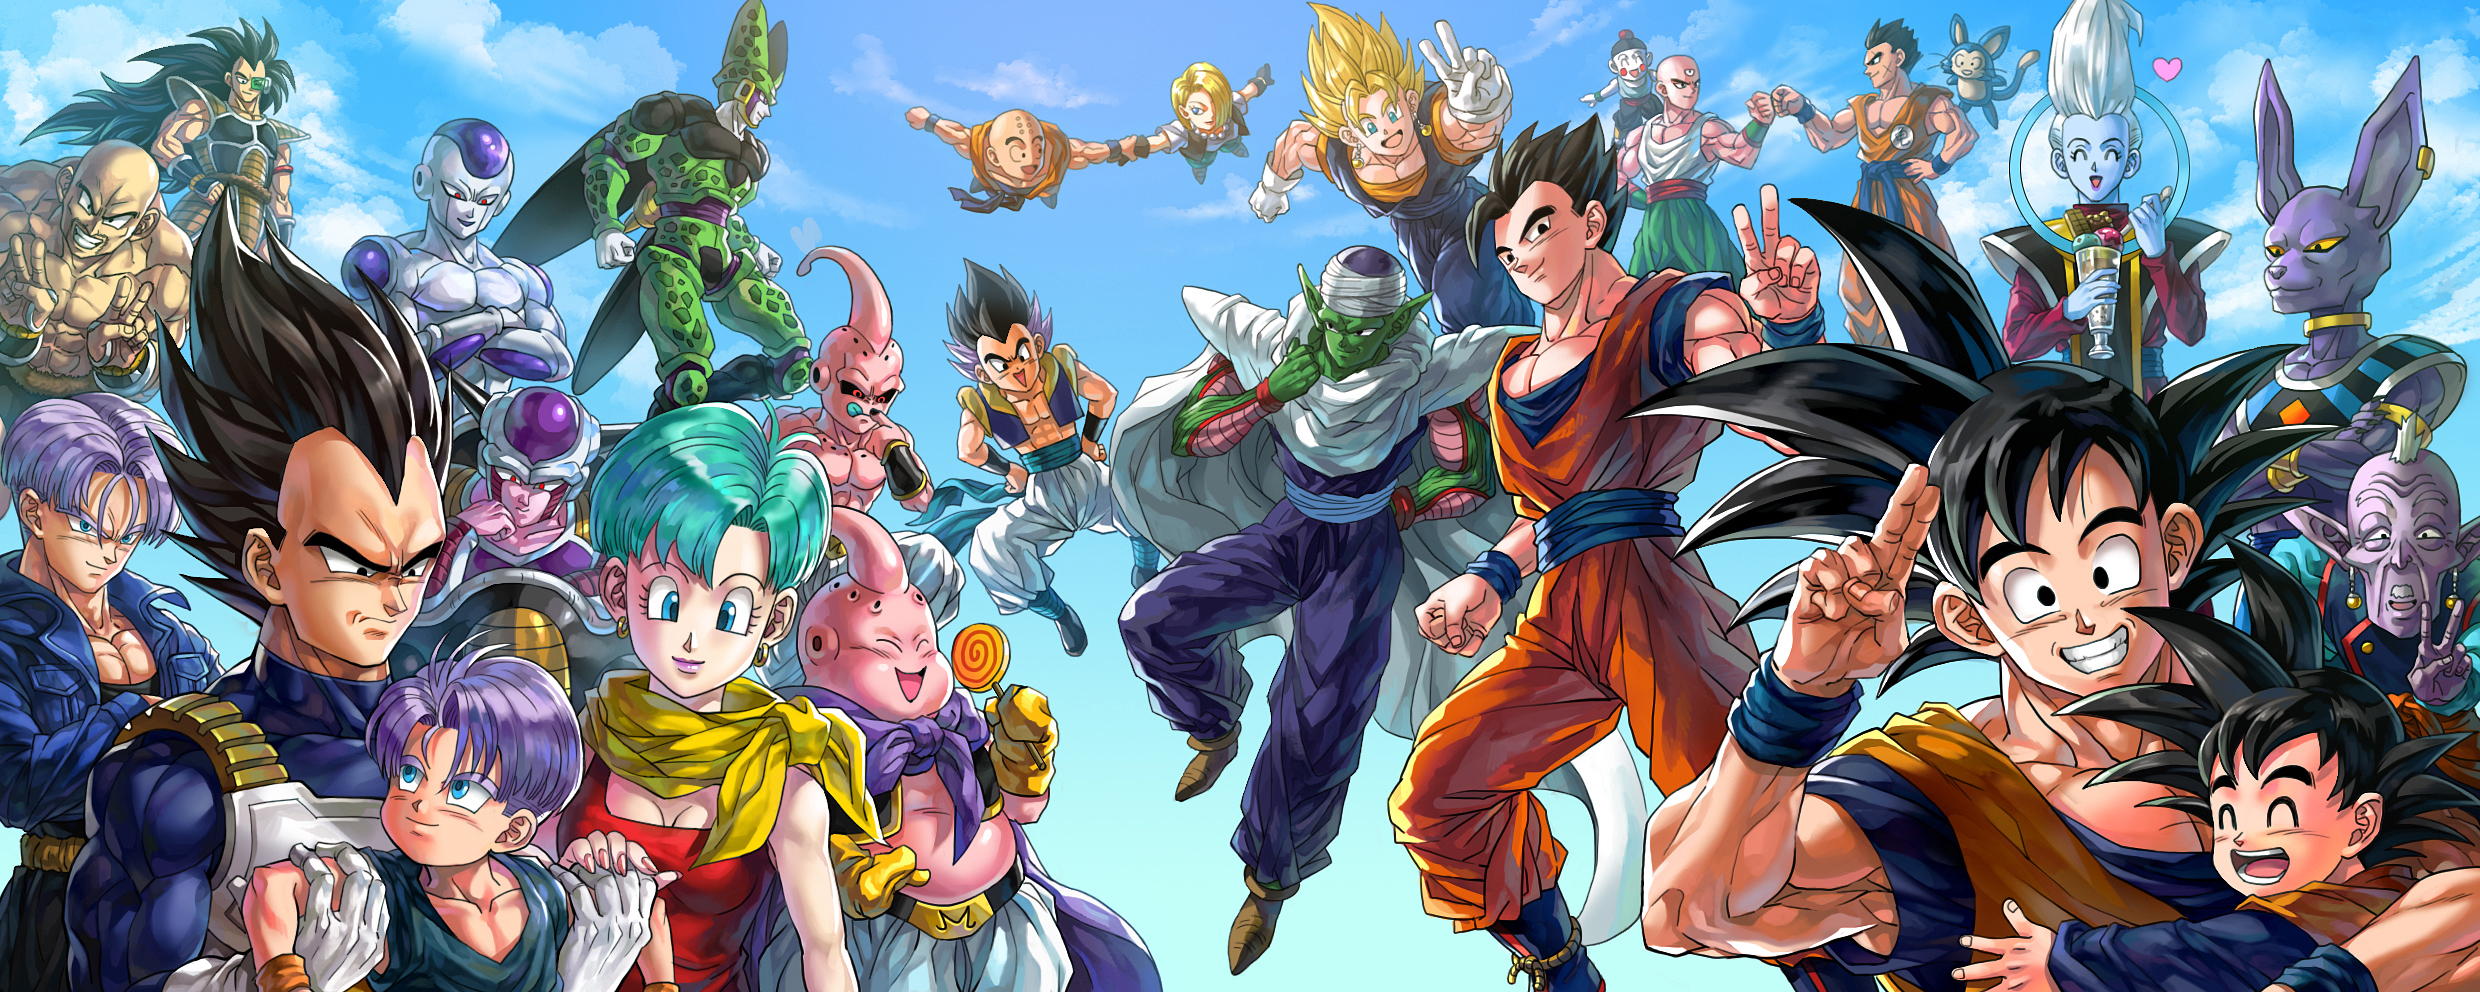 Dragon Ball Z Wallpapers Pictures Images